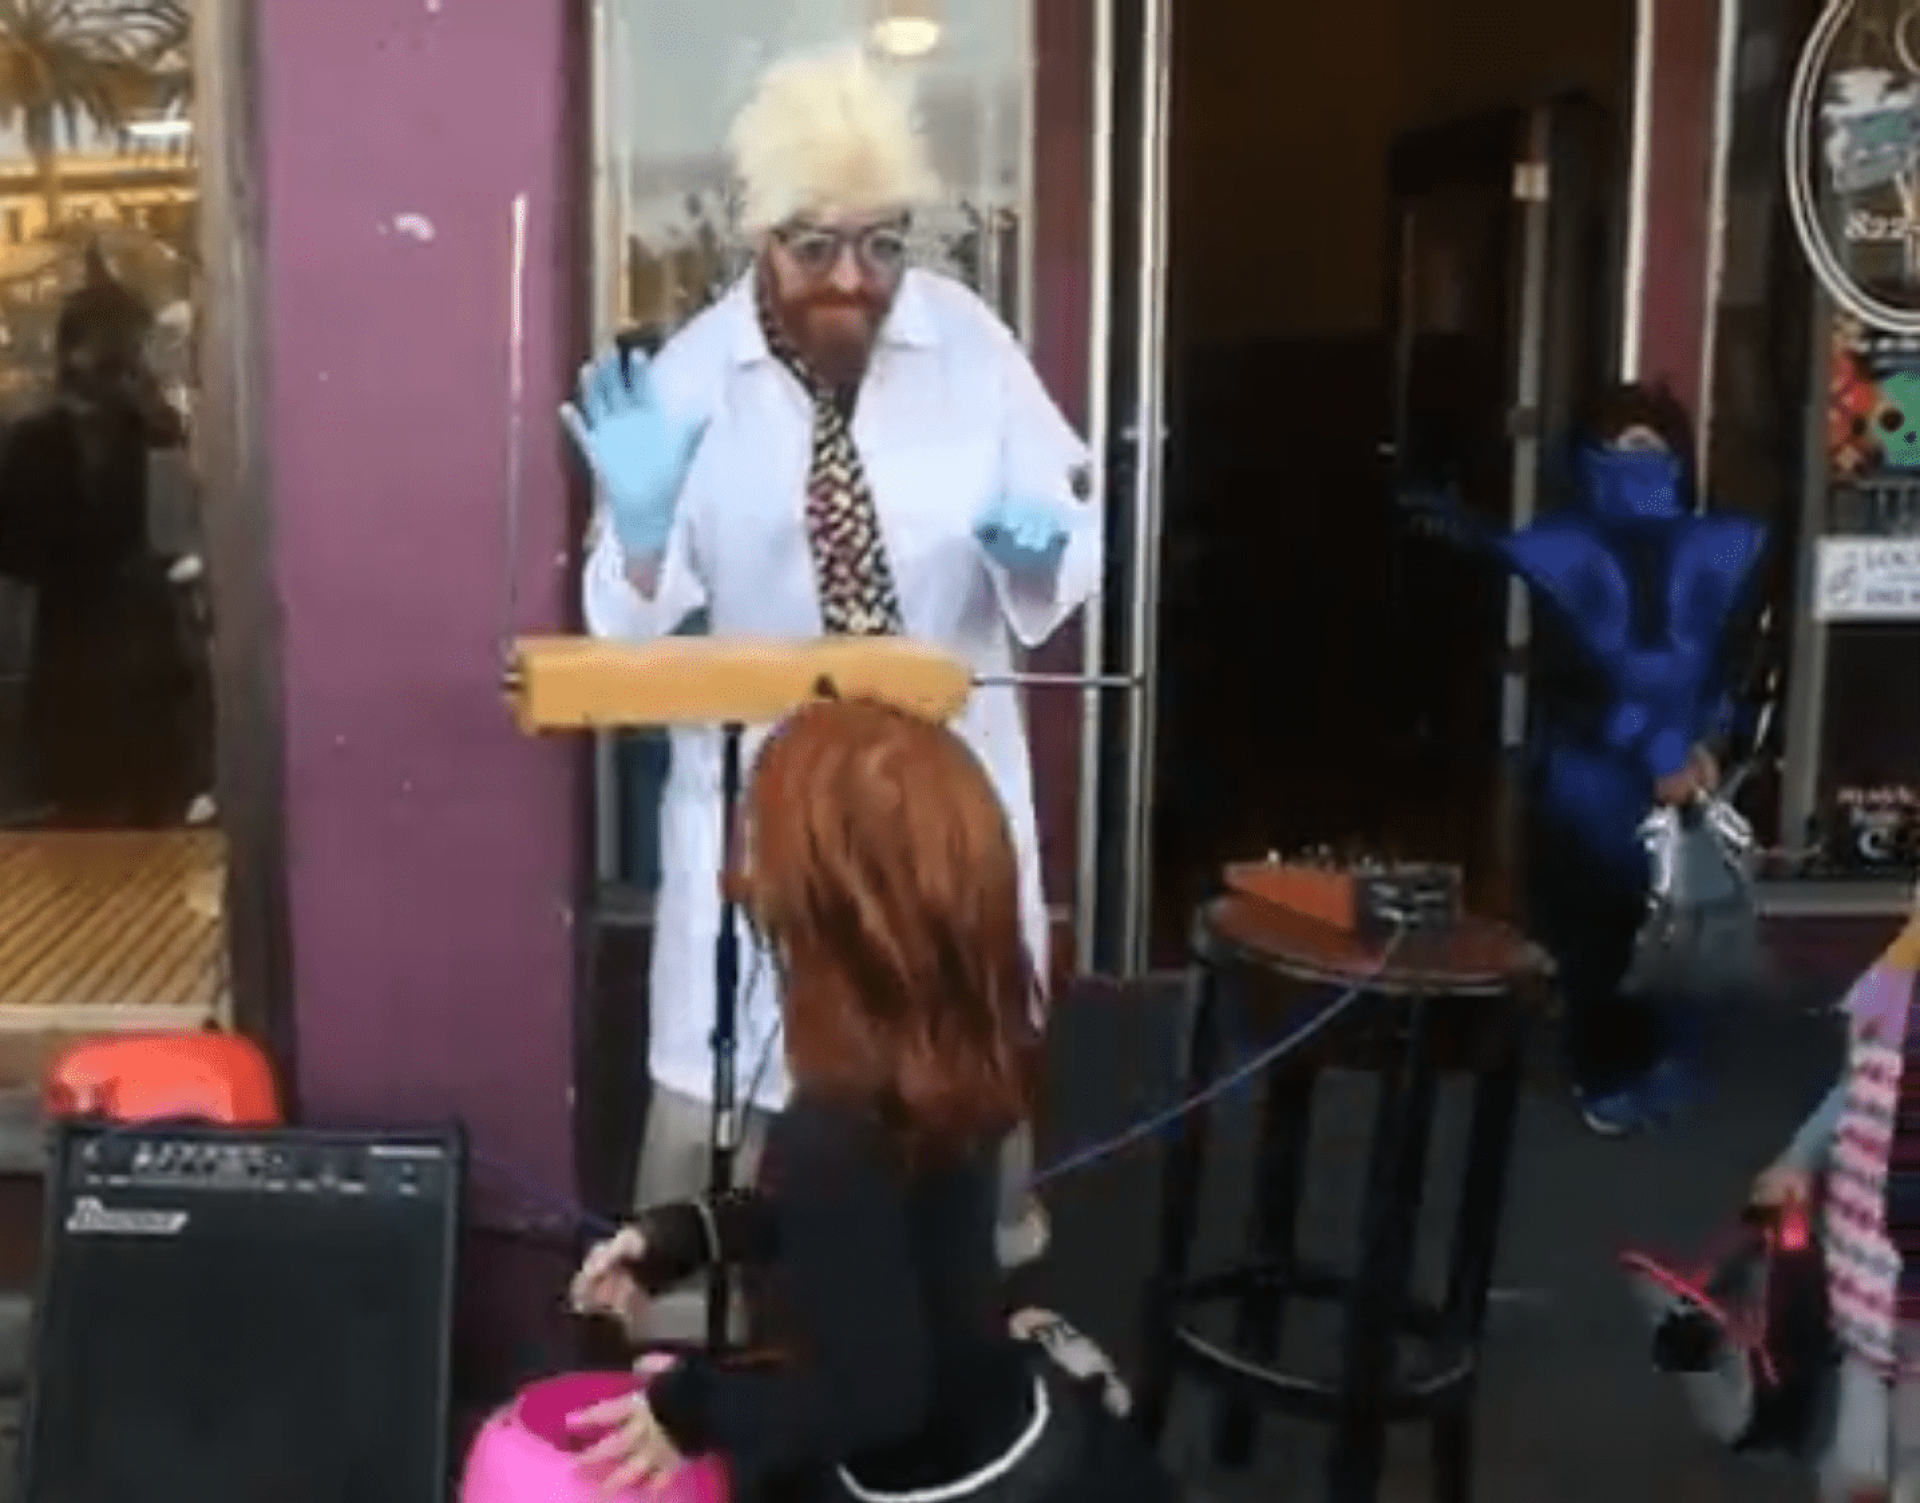 Arcata man plays the theremin for trick-or-treaters walking around the Arcata Plaza on Oct. 31.